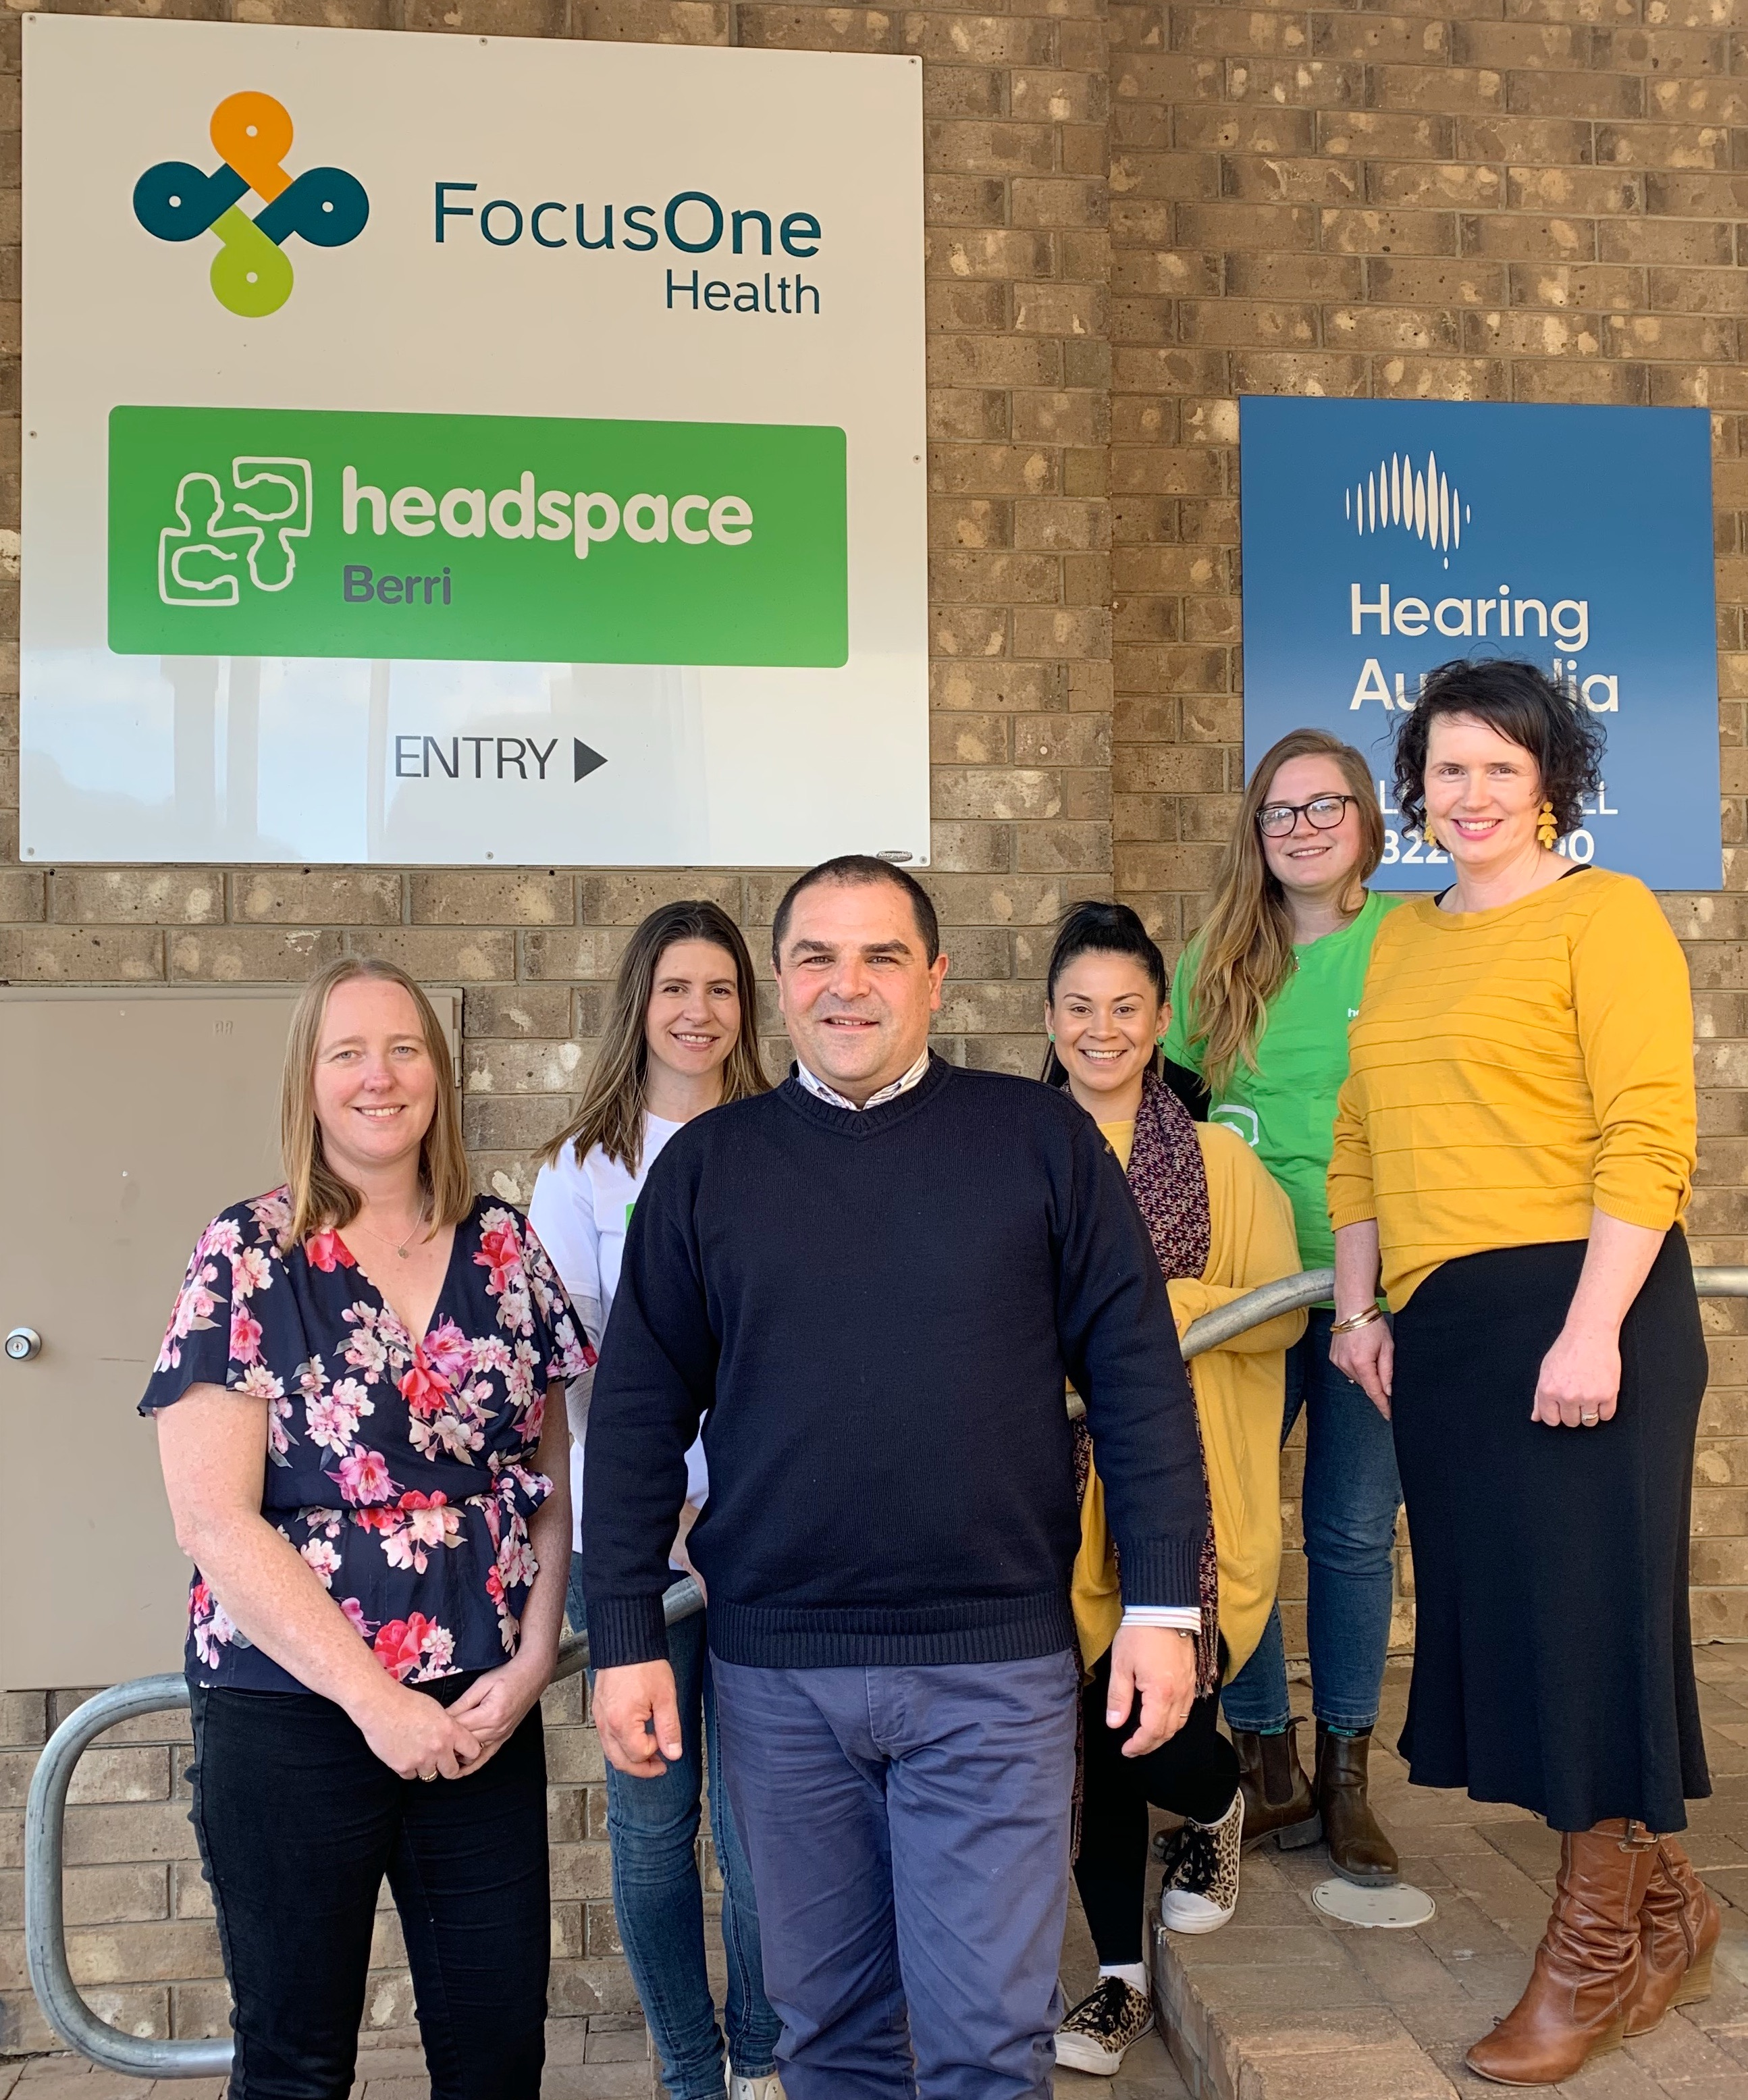 $24 MILLION FUNDING BOOST FOR ADDITIONAL MENTAL HEALTH CARE AT HEADSPACE